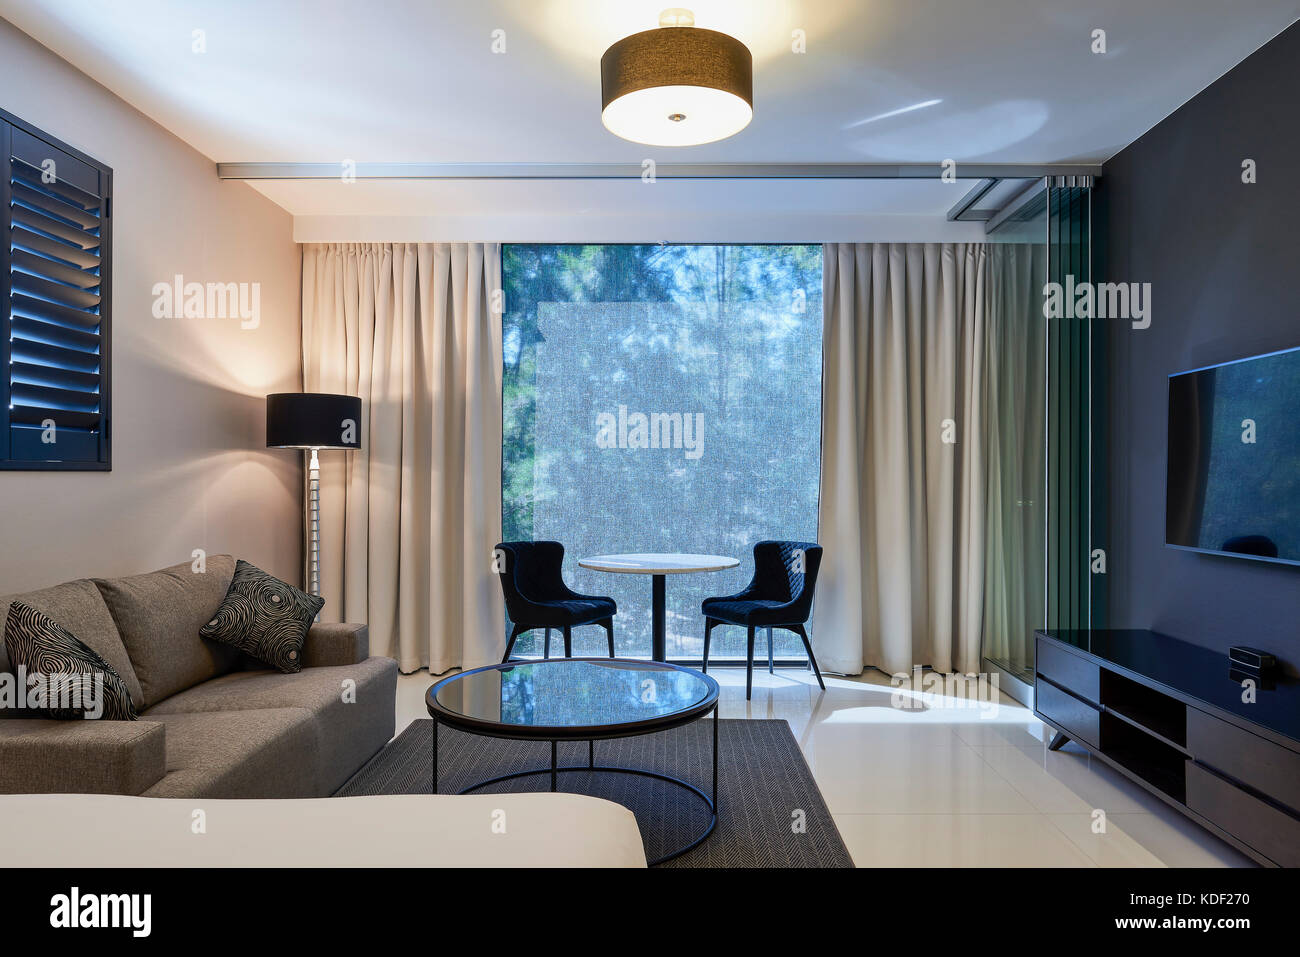 Stock Photo - Typical suite with internal terrace doors open. Good Life Suites Crows Nest Australia. Architect: Nettleton Tribe 2017 & Typical suite with internal terrace doors open. Good Life Suites ... Pezcame.Com